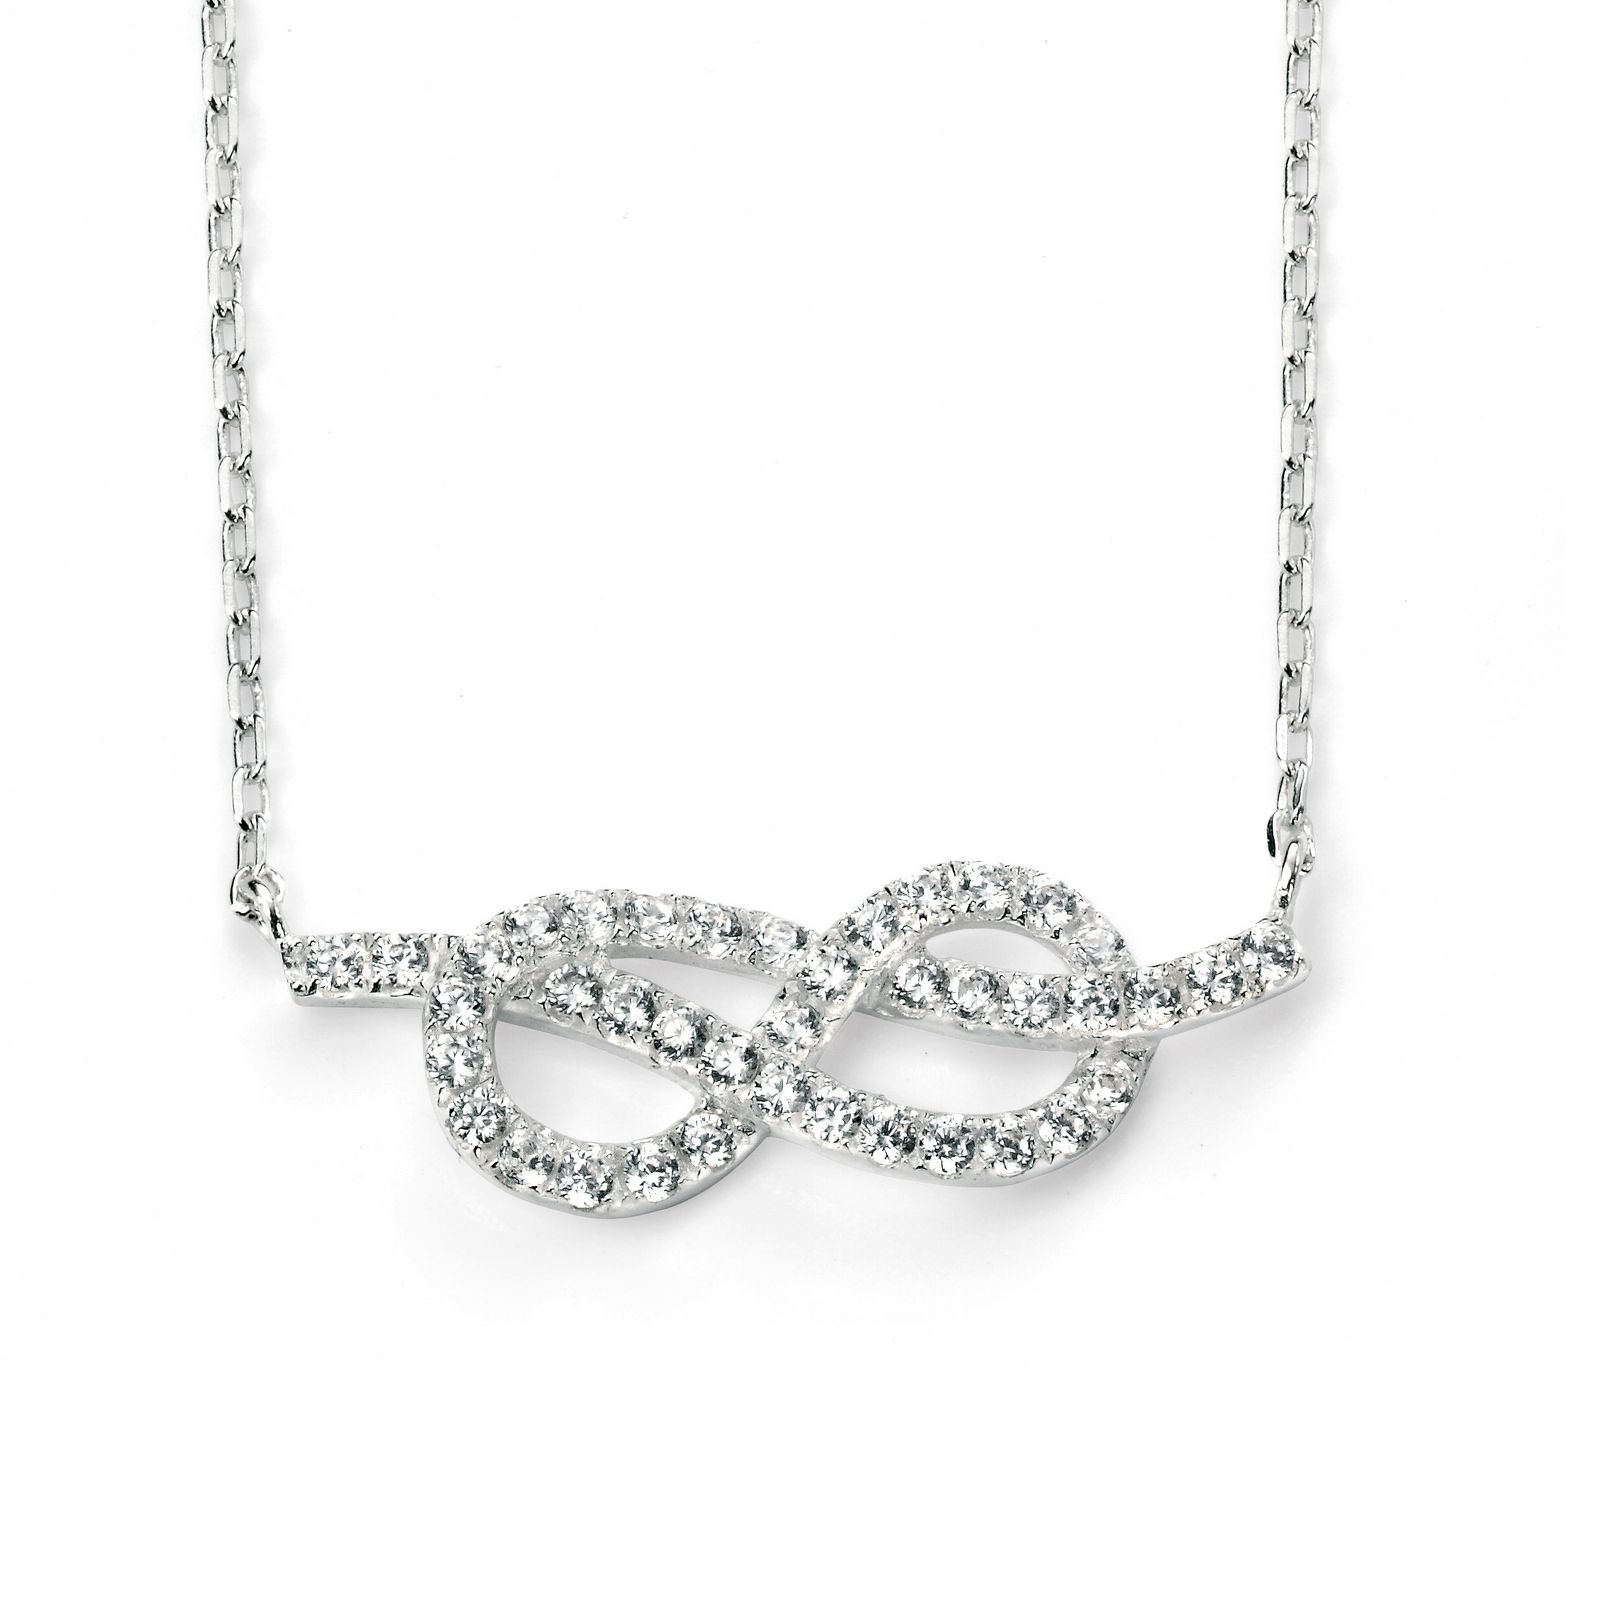 Elements Silver Clear Cz Infinity Necklace 42+3Cm Regarding Latest Sparkling Infinity Locket Element Necklaces (View 8 of 25)